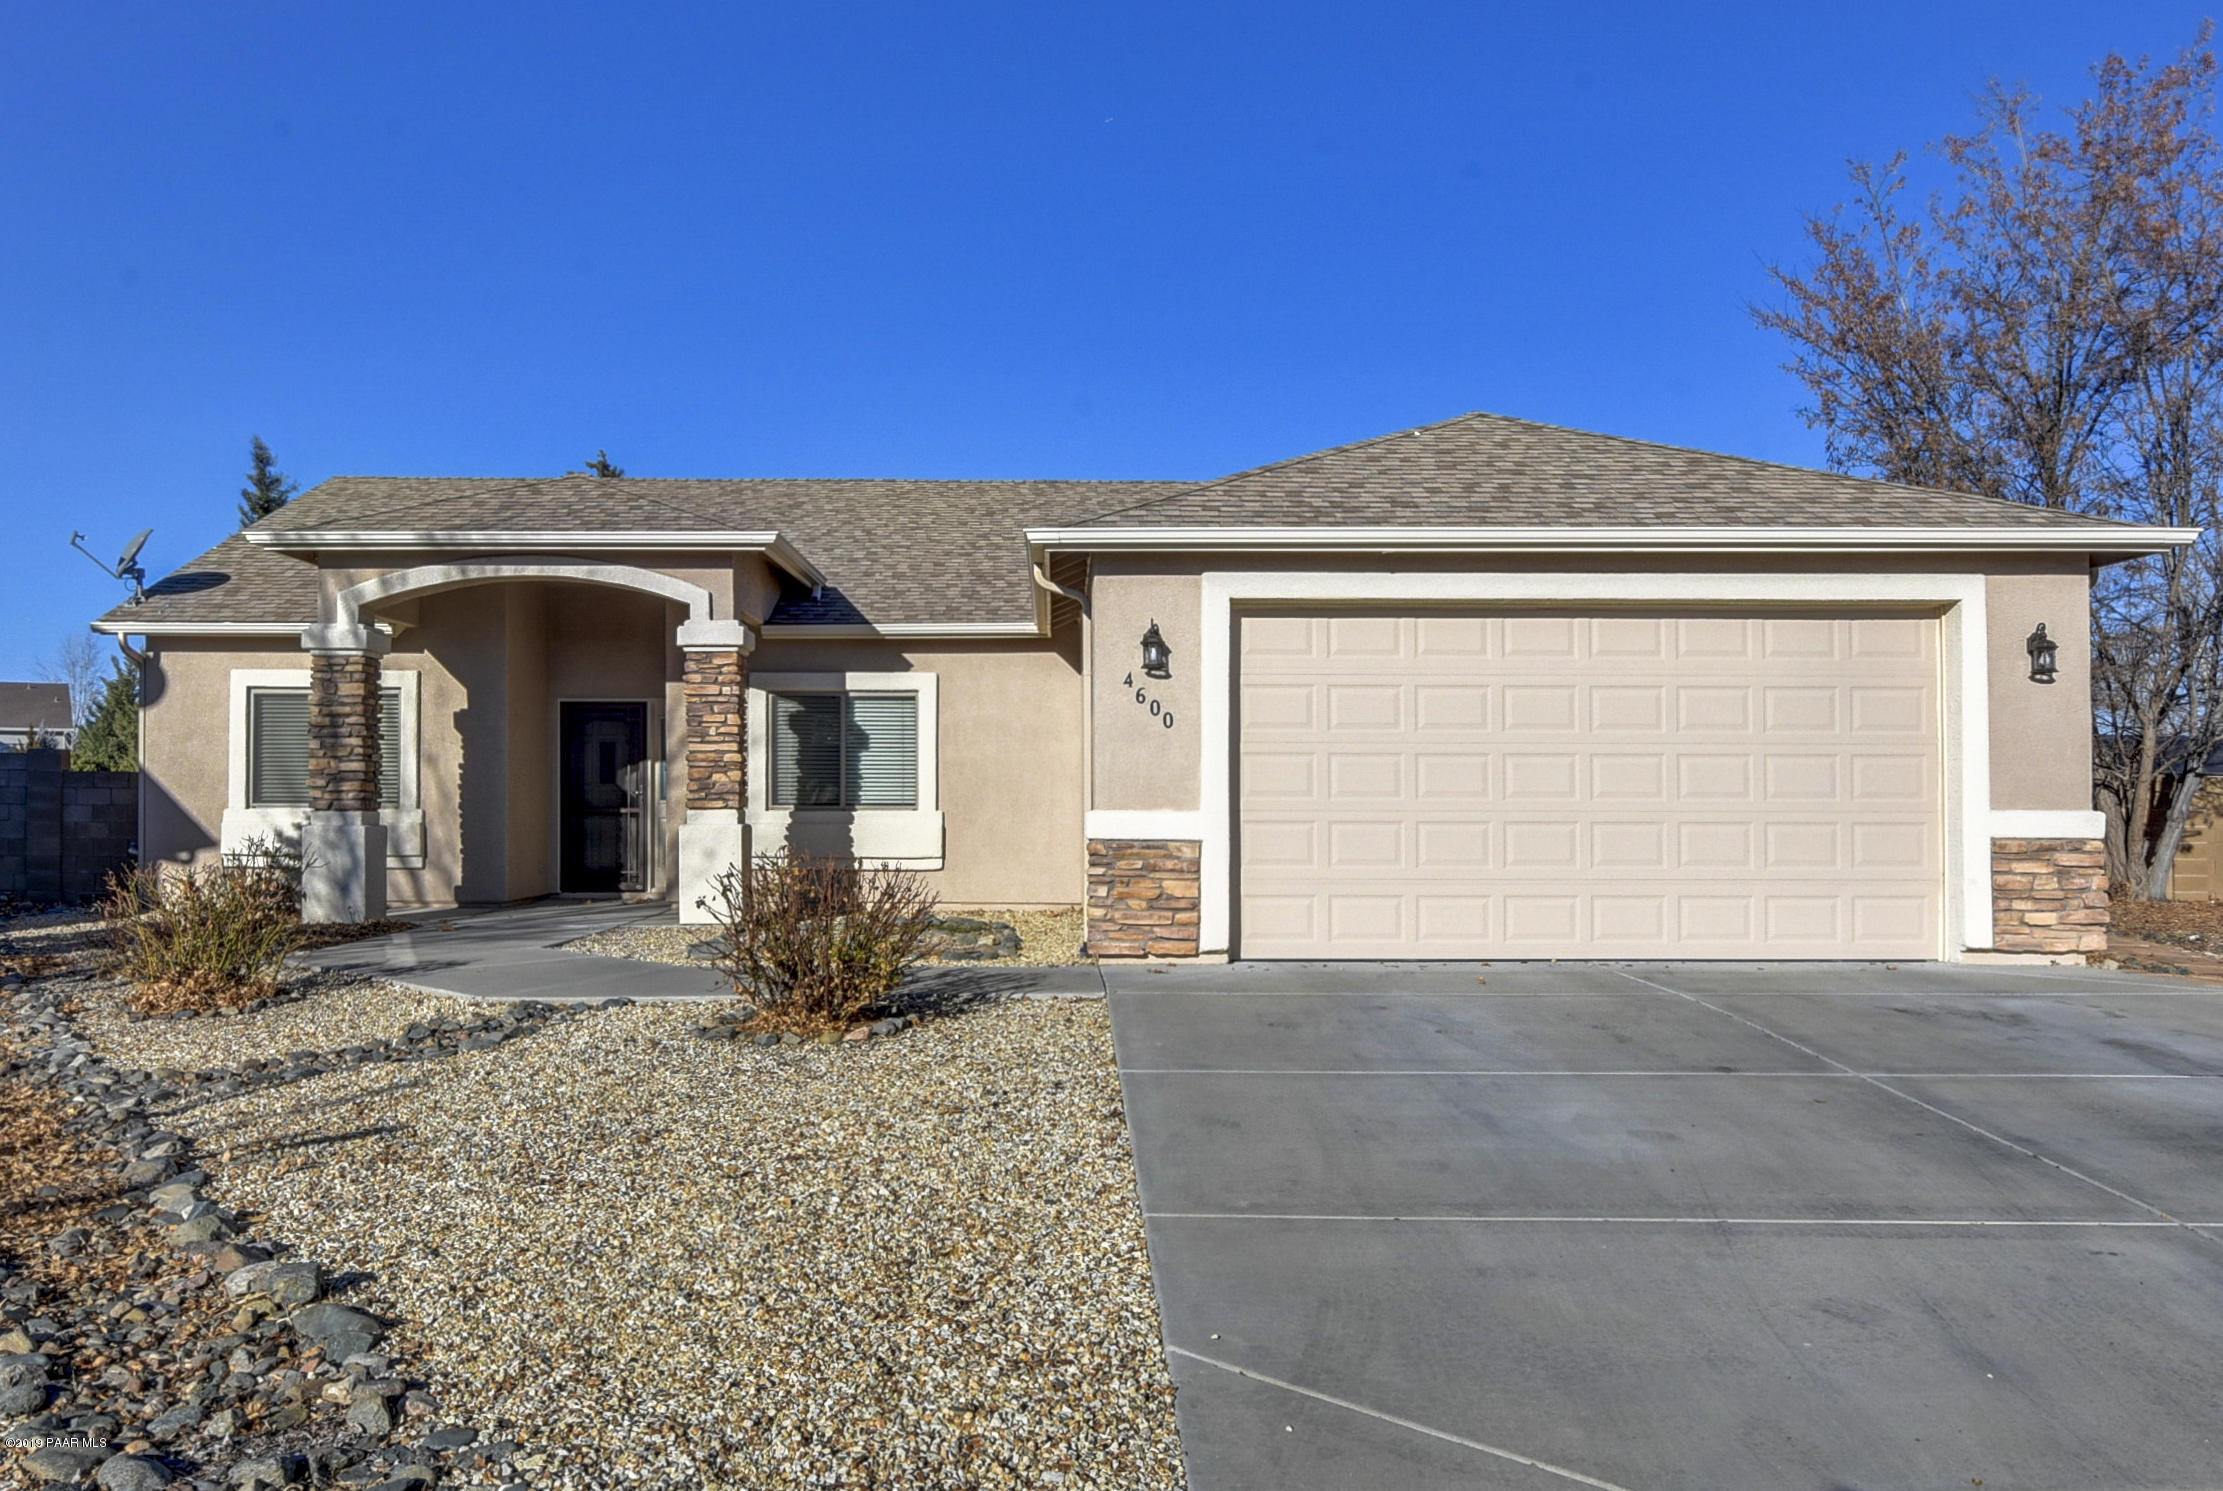 Photo of 4600 Reston, Prescott Valley, AZ 86314